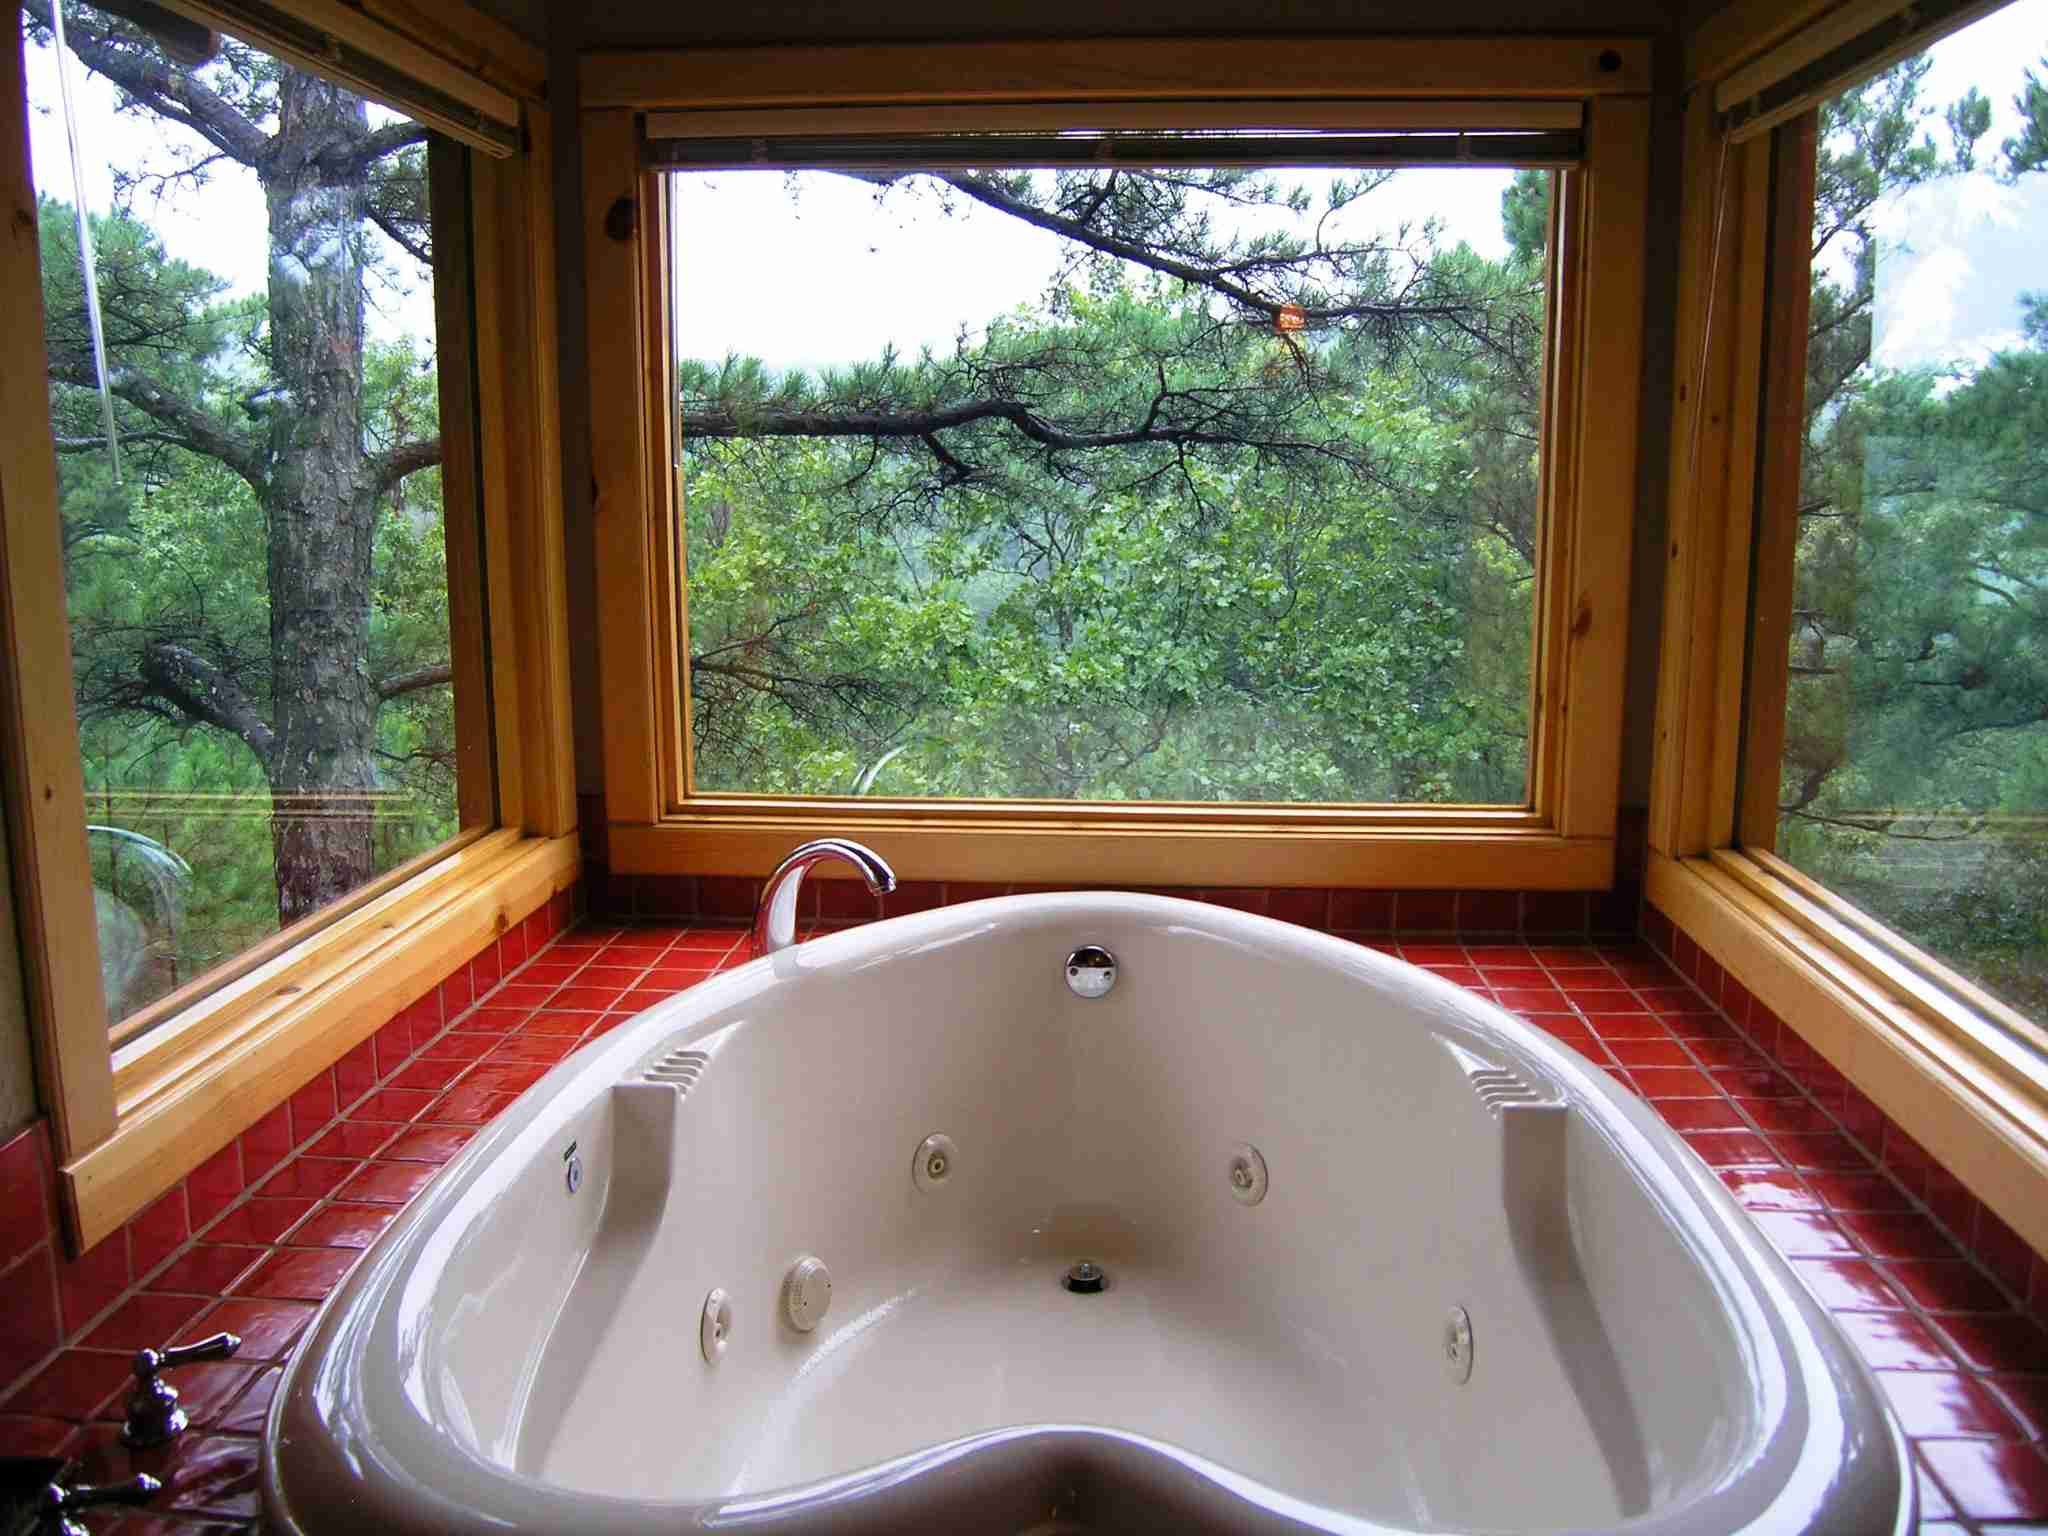 A double-size heart-shaped Jacuzzi is positioned in front three large windows. Photo courtesy of Laura at Tree House Cottages.